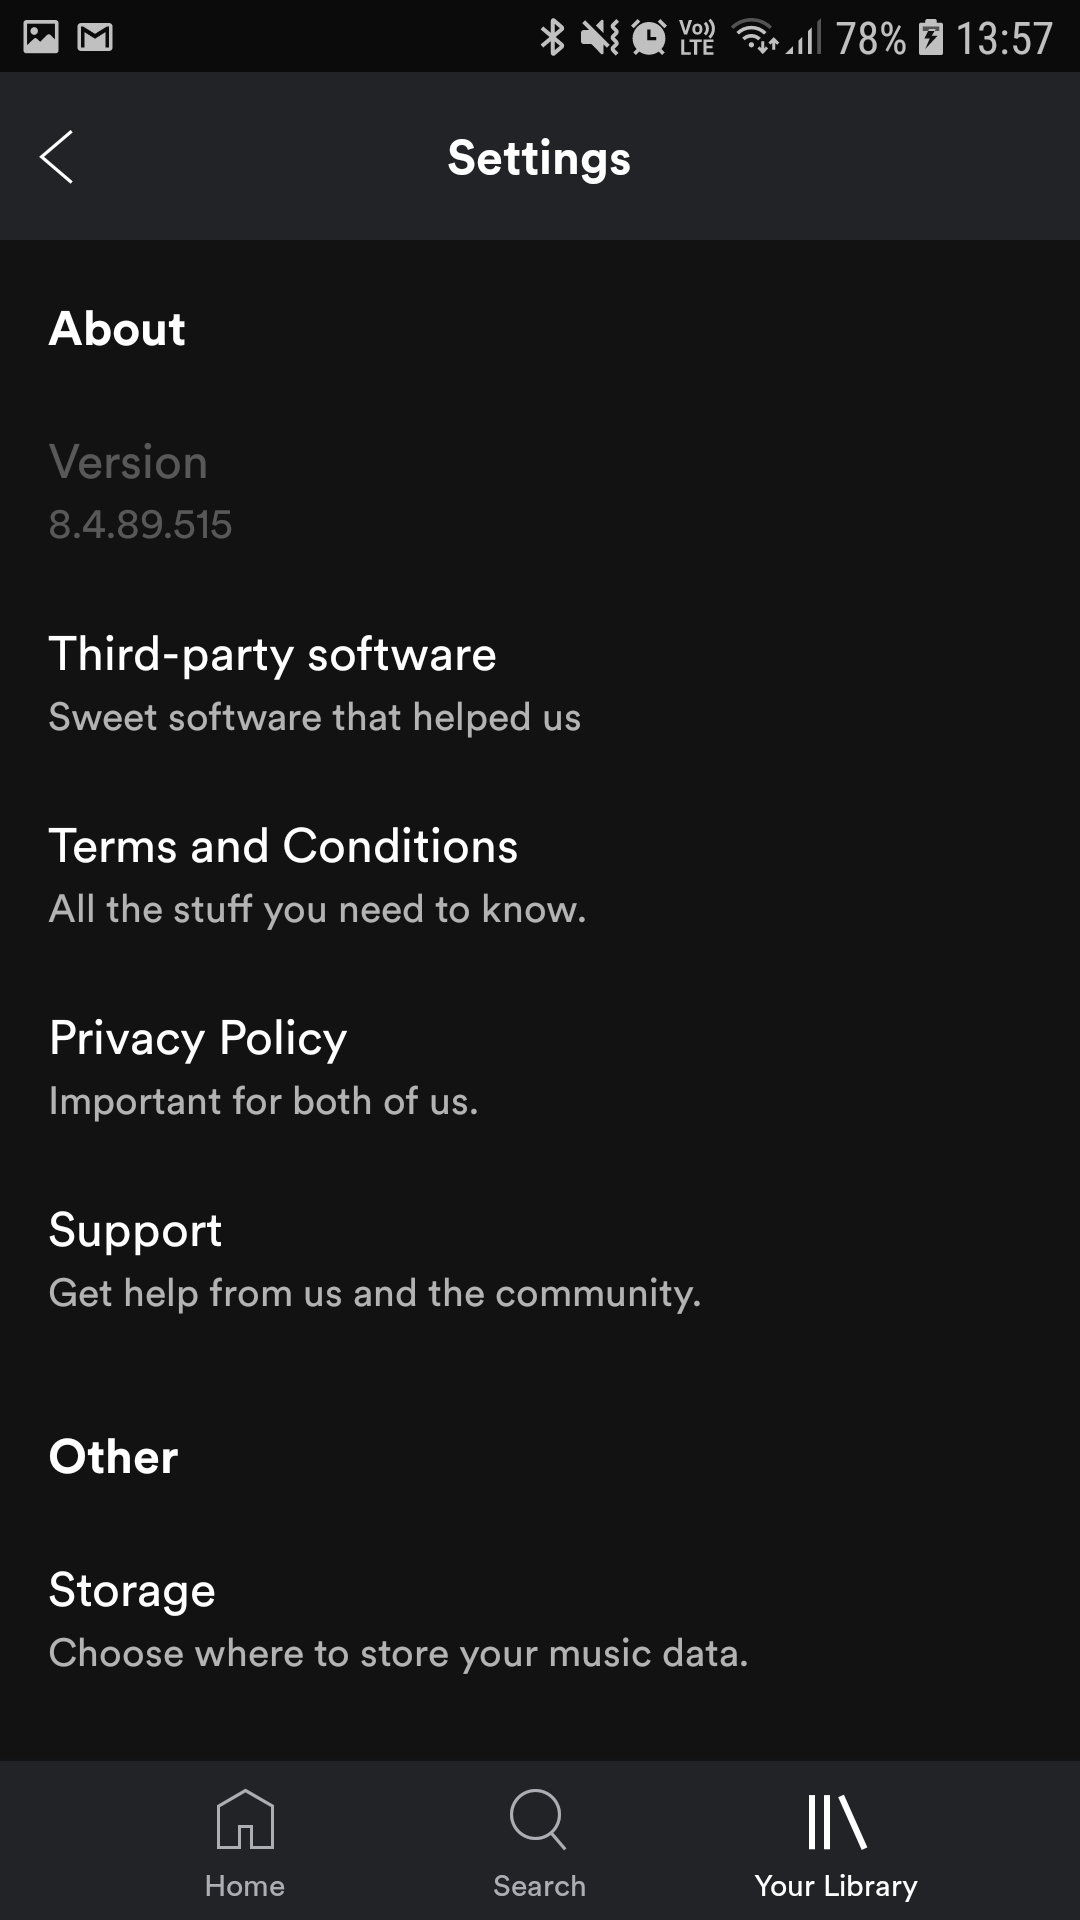 Screenshot_20190118-135747_Spotify.jpg